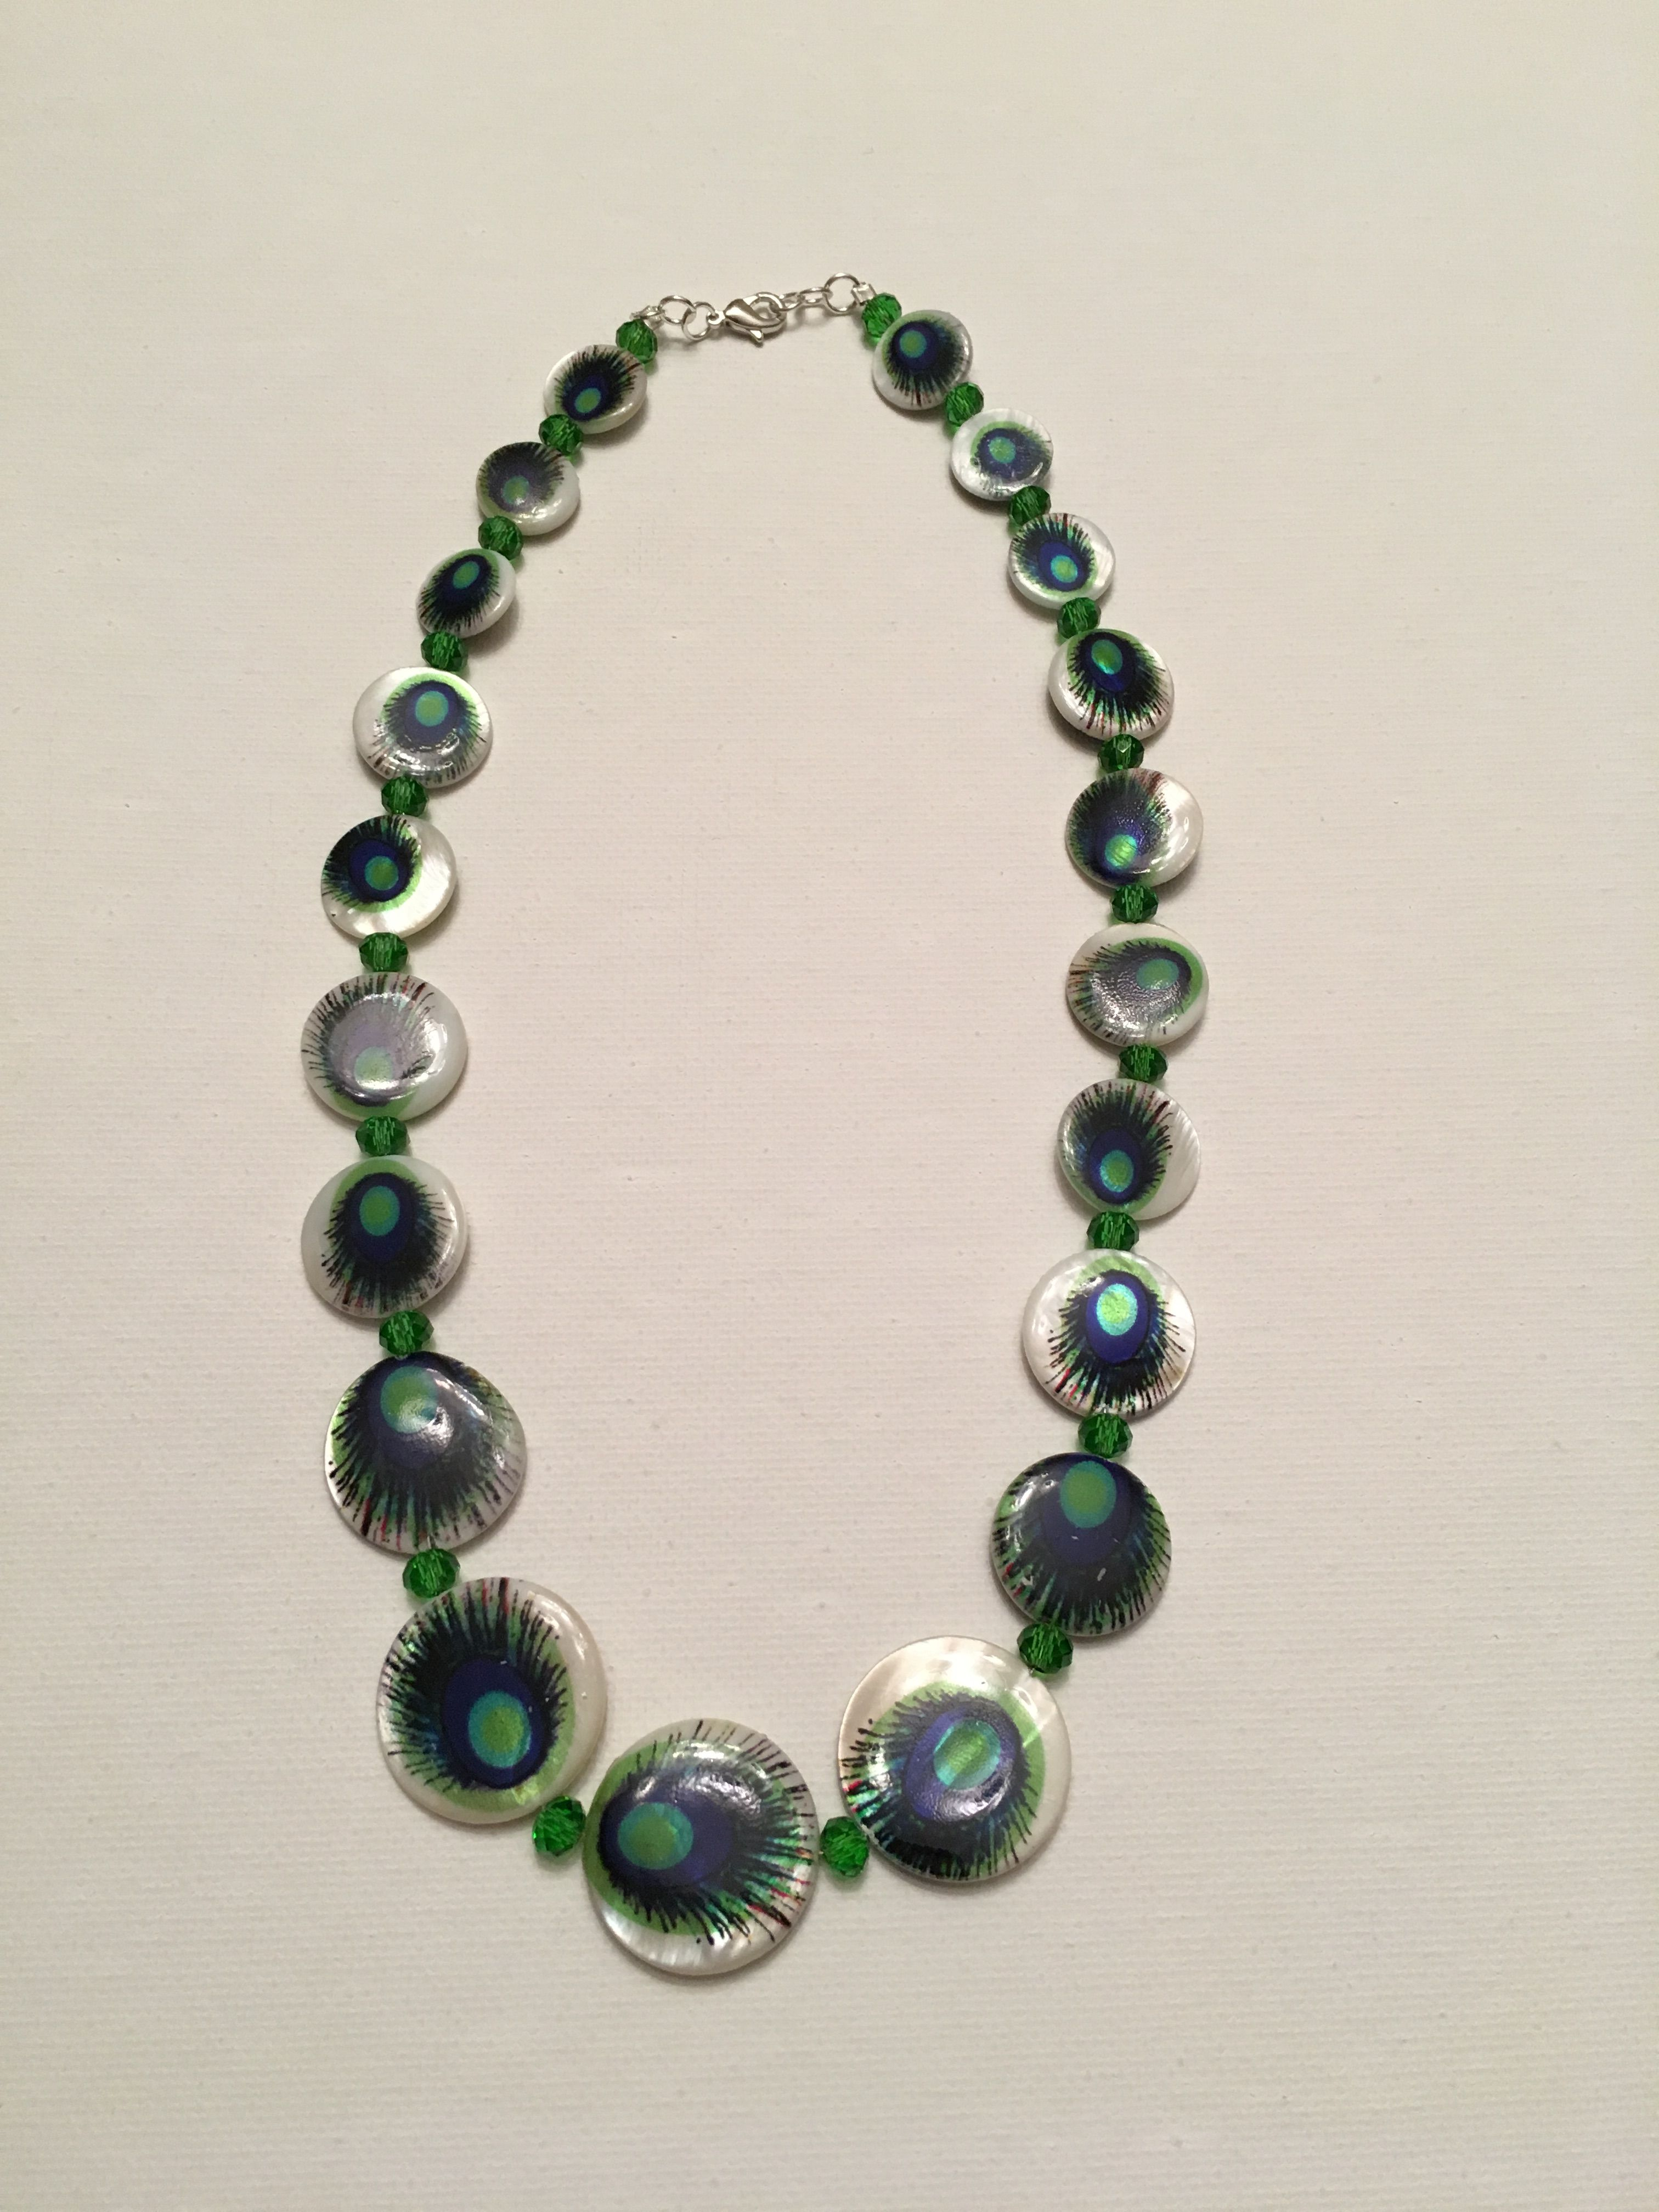 Visit aleciamariedesigns.com for more on price and inventory